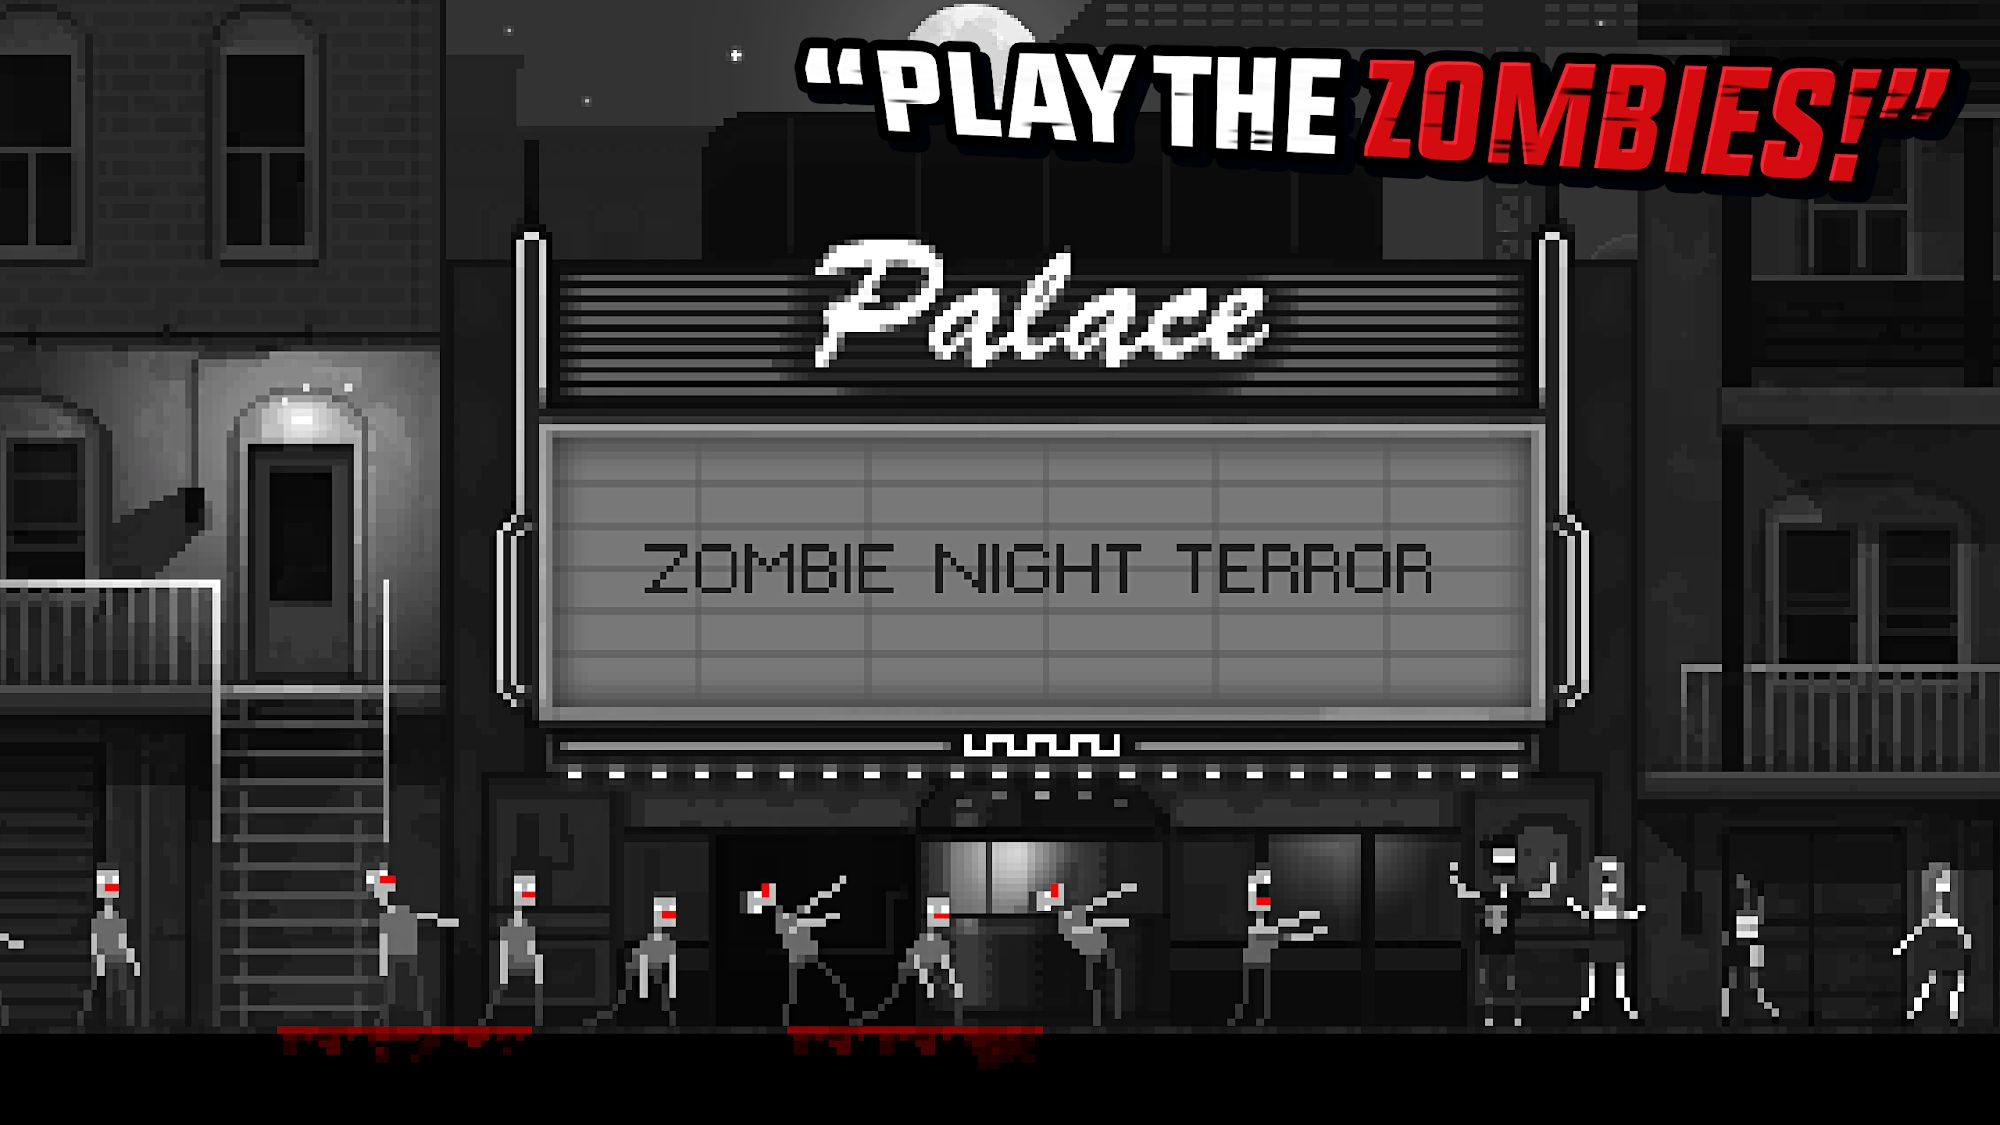 Zombie Night Terror - A plague unleashed для Android